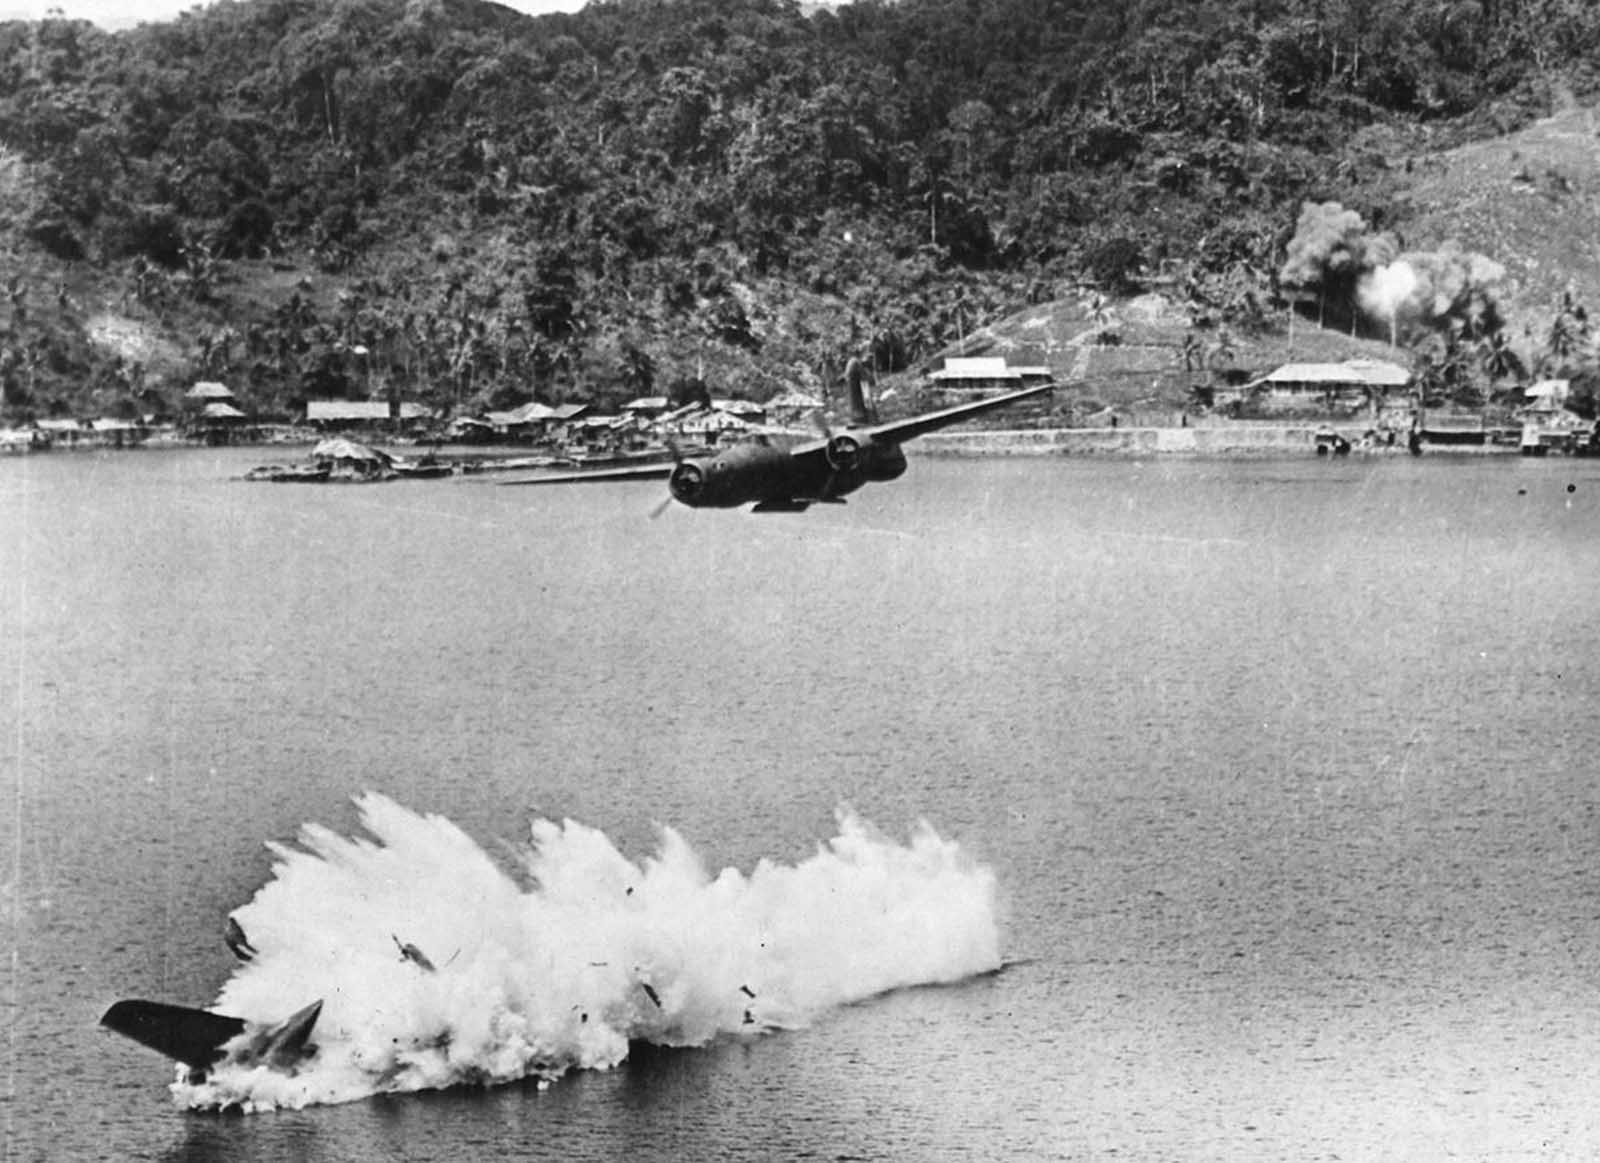 Two of twelve U.S. A-20 Havoc light bombers on a mission against Kokas, Indonesia in July of 1943. The lower bomber was hit by anti-aircraft fire after dropping its bombs, and plunged into the sea, killing both crew members.